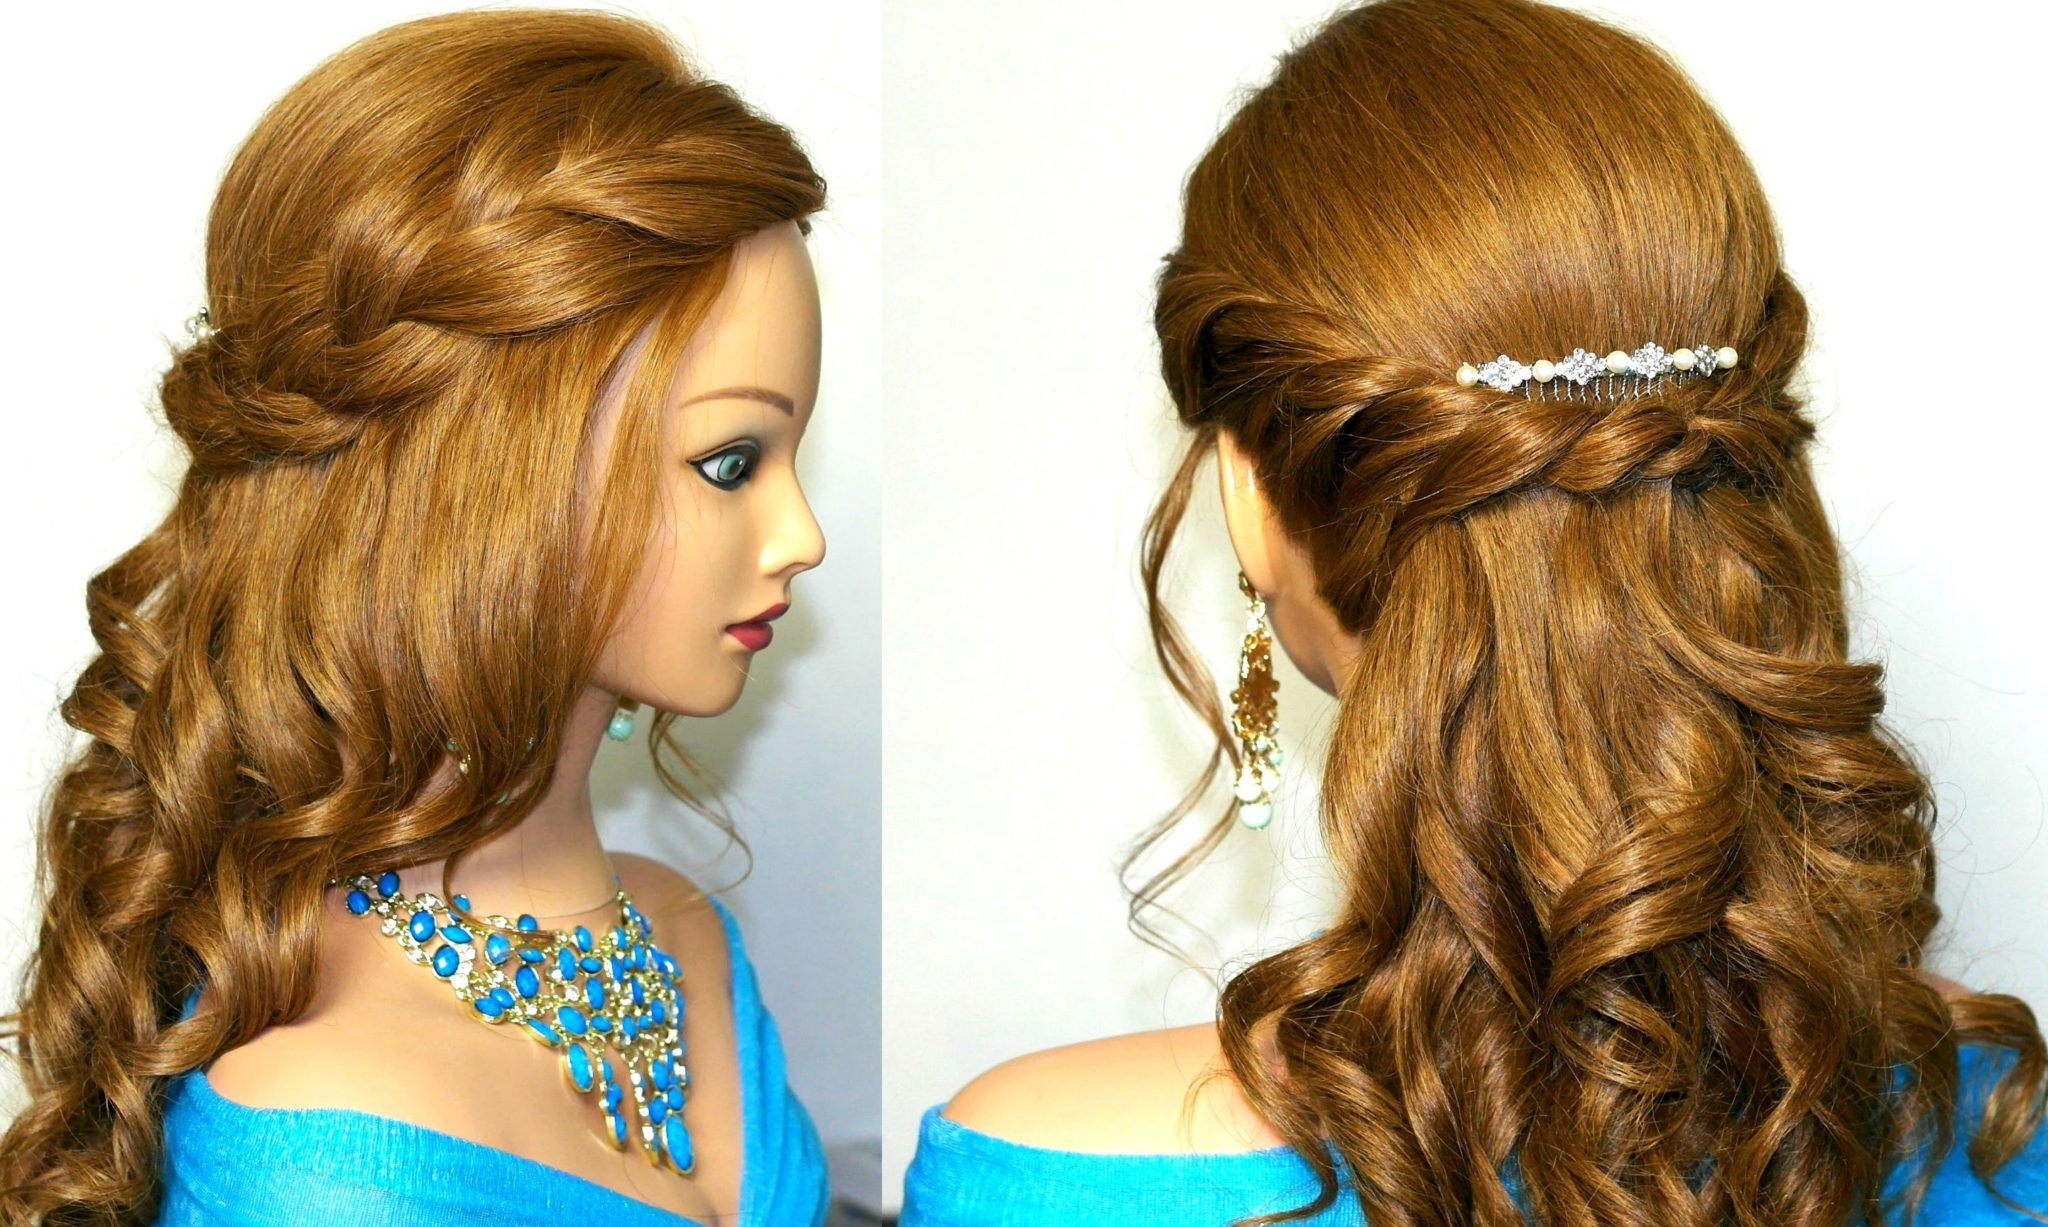 curly-romantic-prom-hairstyle-for-medium-long-hair-youtube-long-hair-prom-styles-maxresdefault